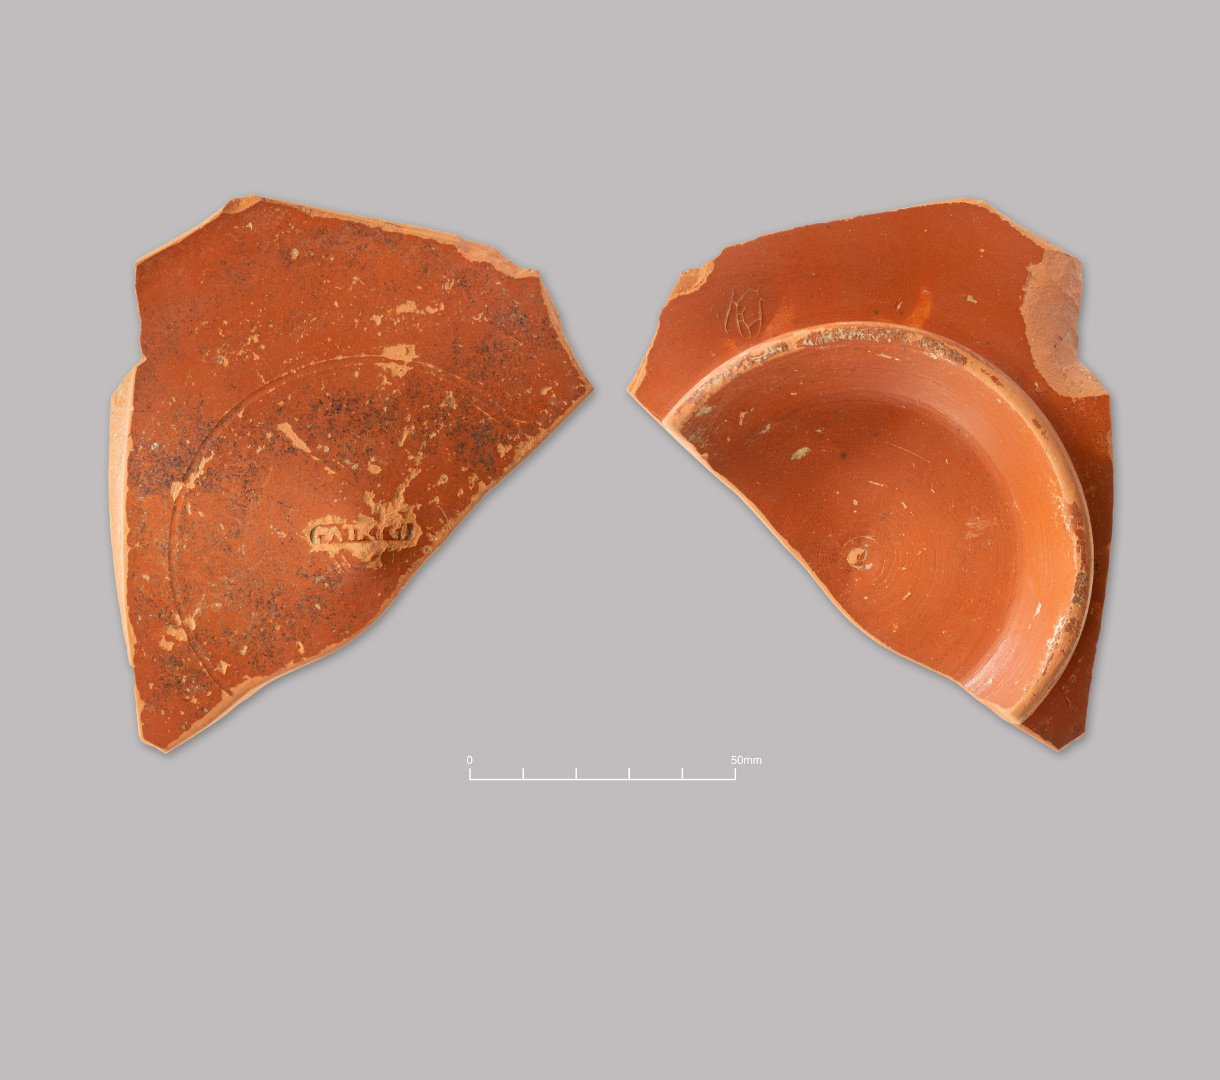 South Gaulish Samian ware platter. Makers stamp [PATRICI] of potter Patricius. Early Roman (c. 70–100 AD)